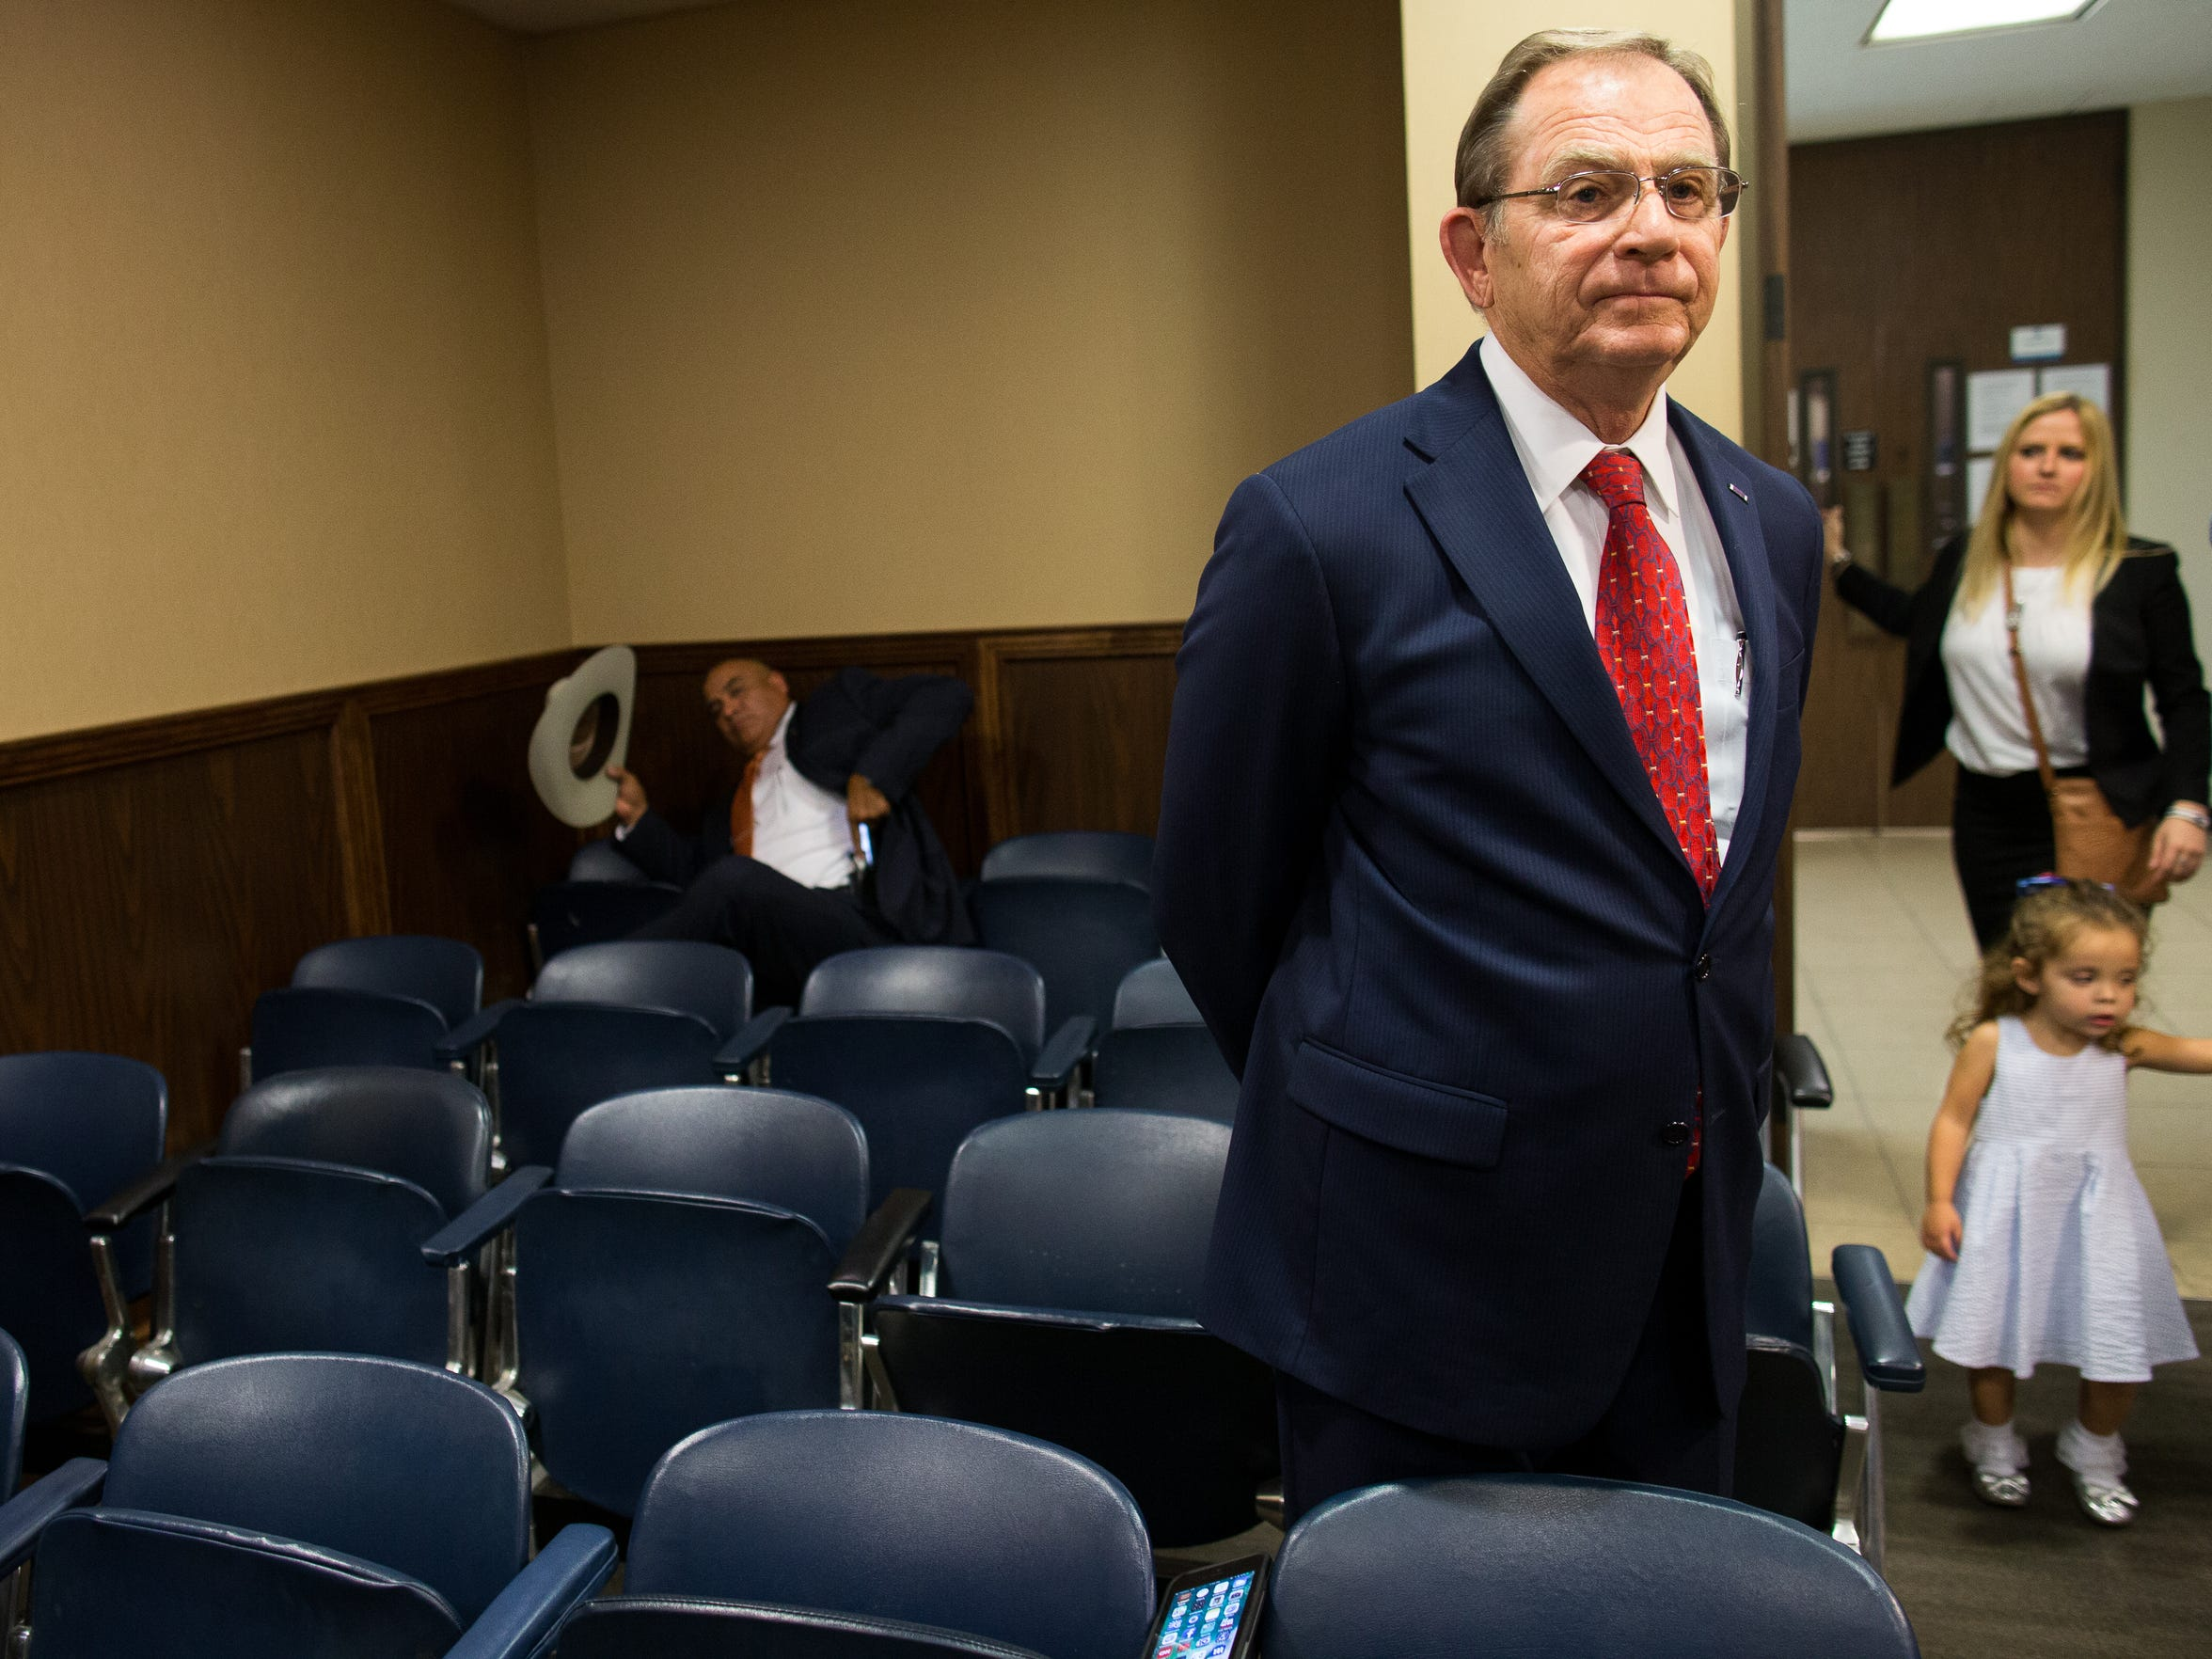 Judge Guy Williams stands in the gallery of the 347th court room before this hearing after being charged with two counts of aggravated assault with a deadly weapon on Friday, Nov. 3, 3017.